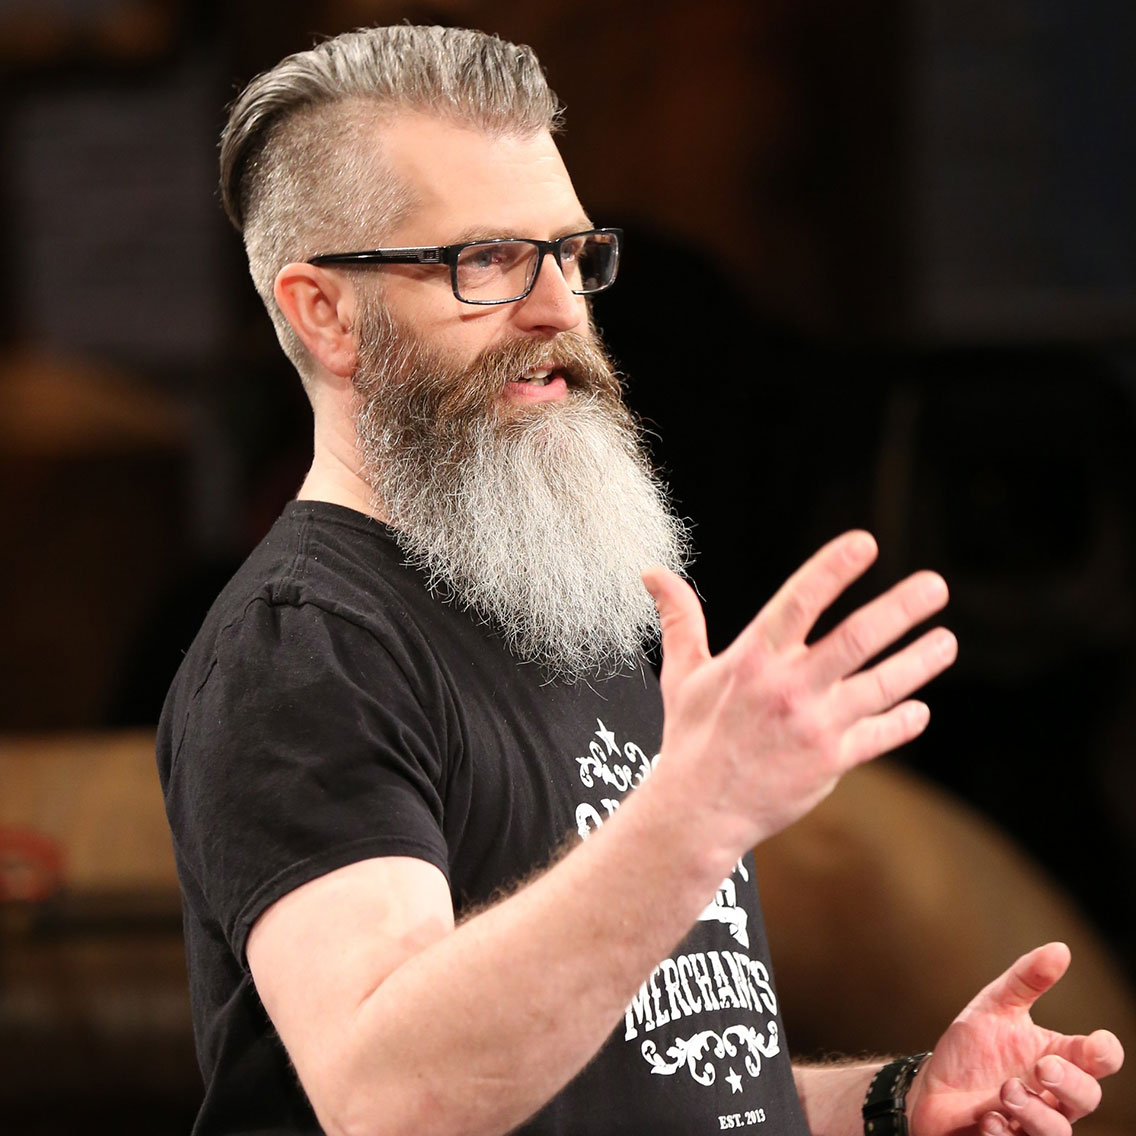 Matt White, founder of Sussex Beard Oil Merchants, presents his products on Dragons' Den.